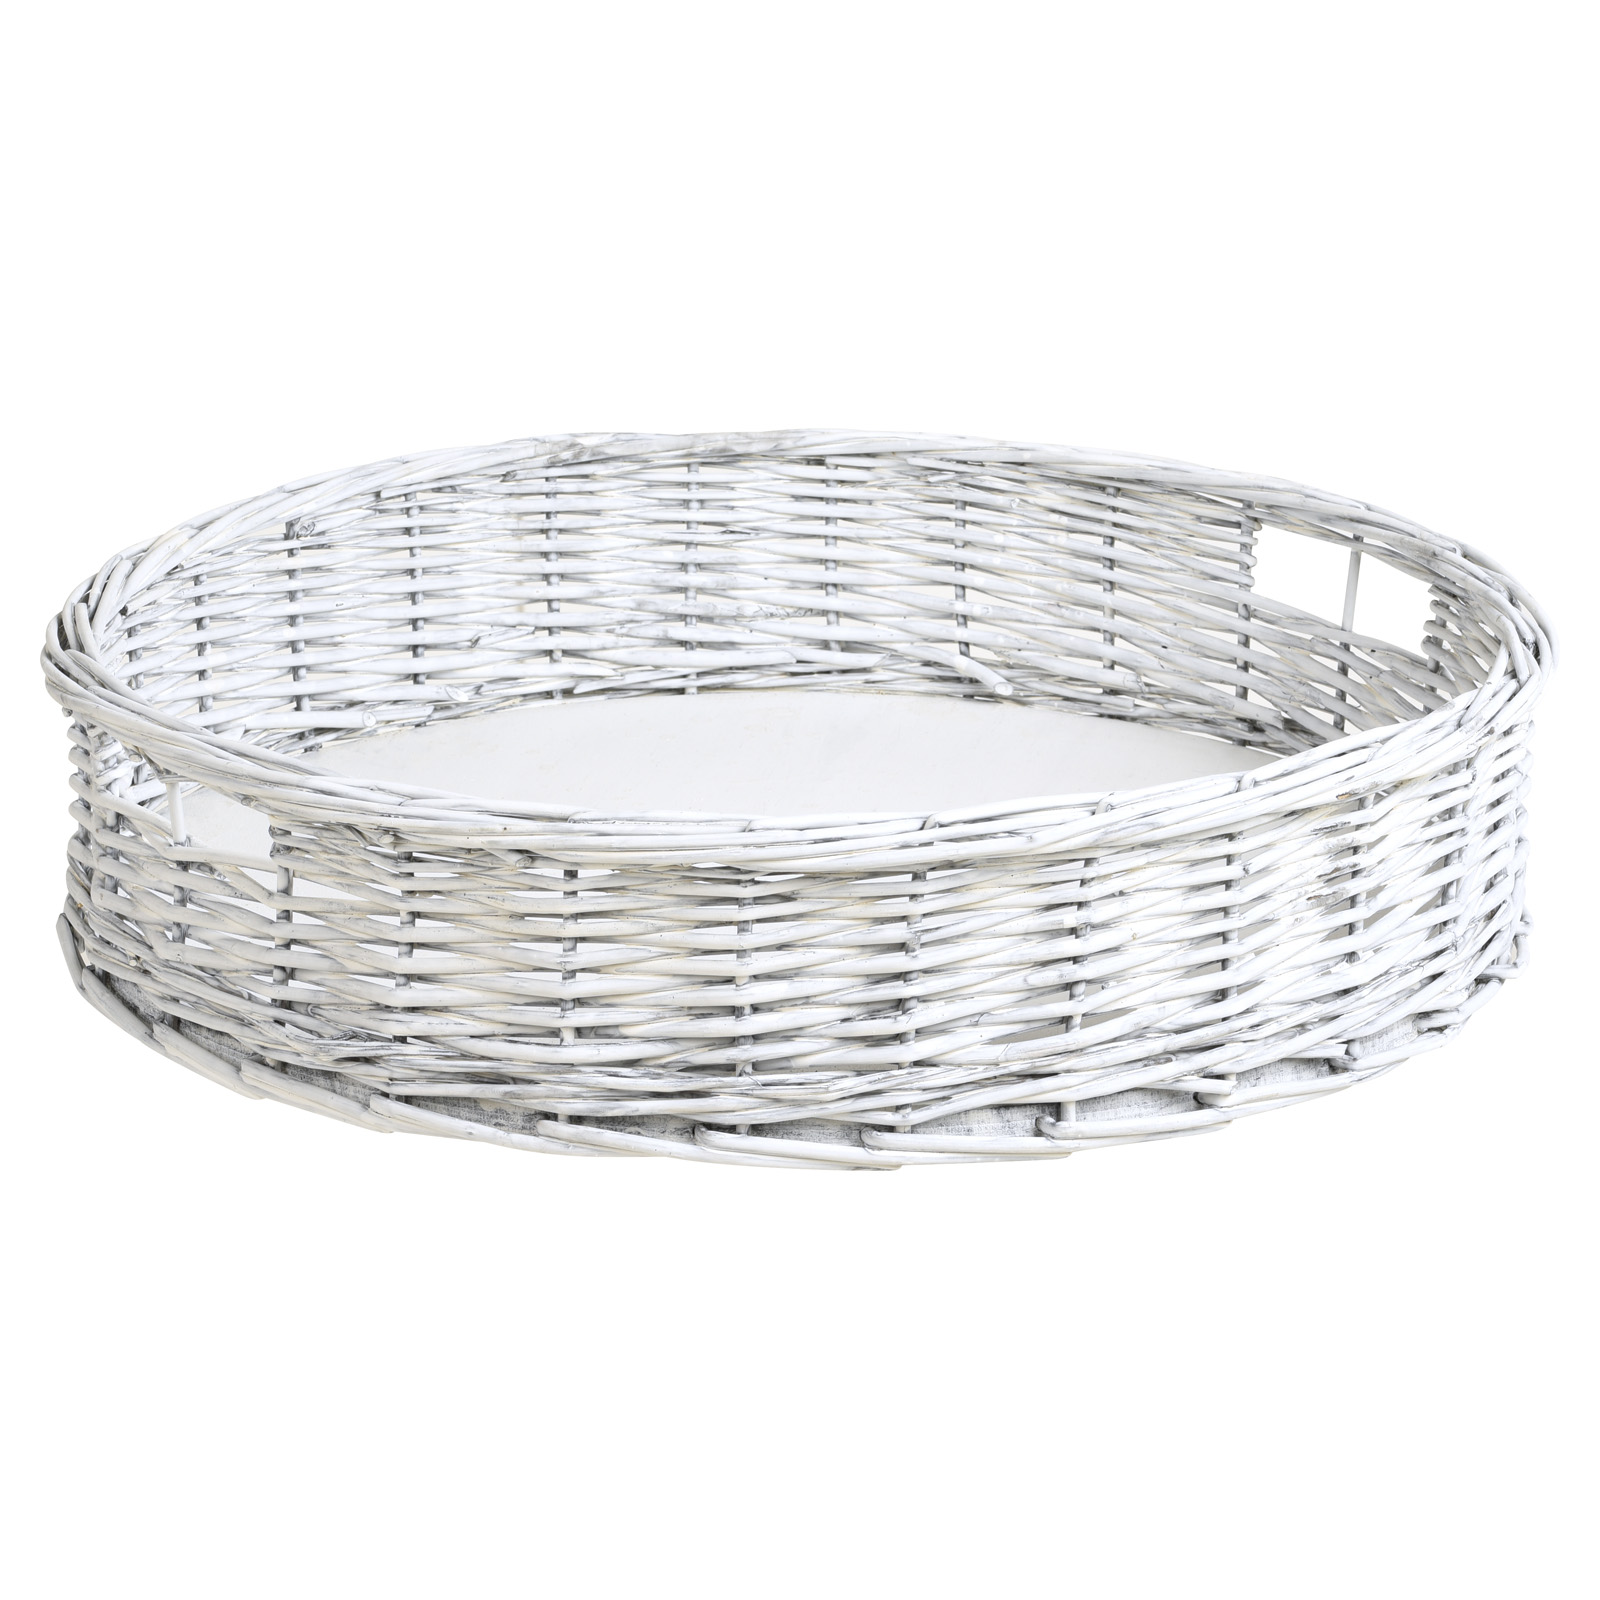 Hartleys-Round-Wicker-Serving-Tray-Decorative-Wooden-Platter-Coffee-Table-Decor thumbnail 13